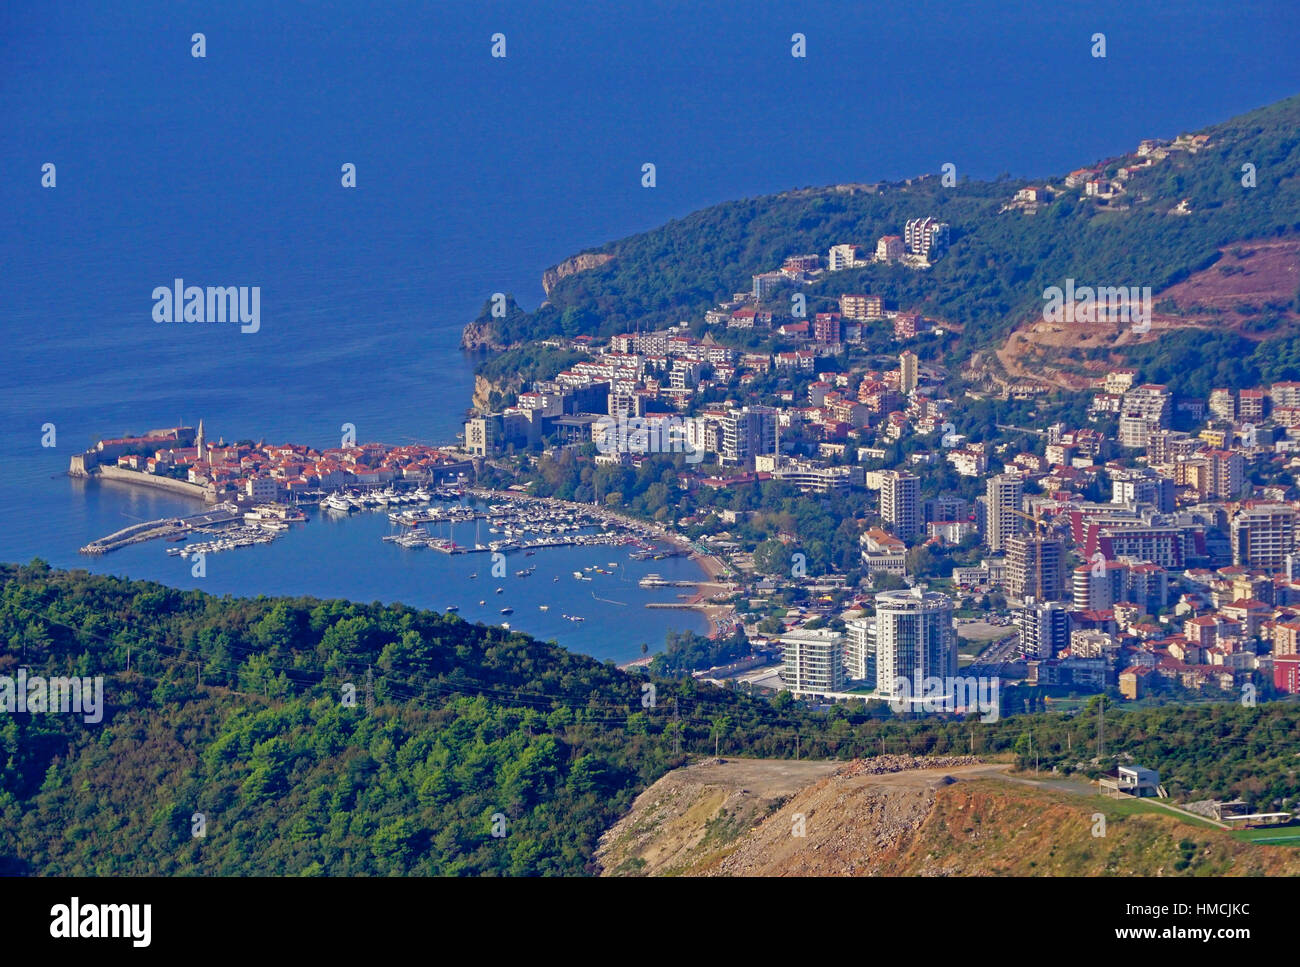 Resort city of Budva with medieval Old Town and marina on Adriatic Sea Stock Photo